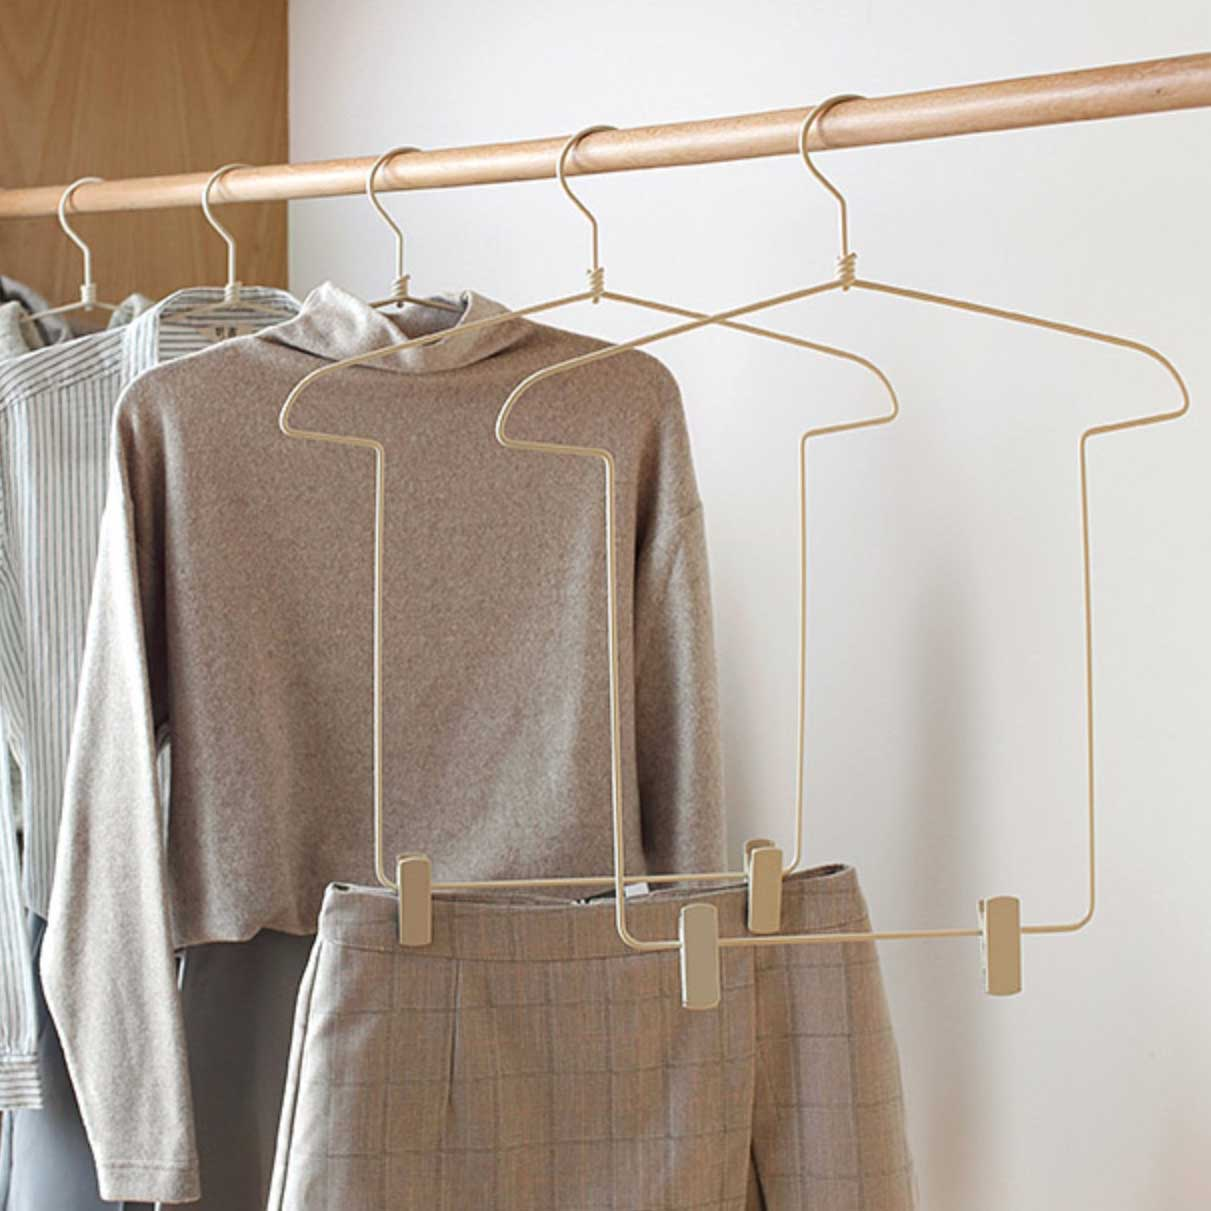 Outfitter Clothes Hanger, closet organisation organization ideas, hangers for home, home accessories, laundry clothes hangers, pants hangers, hangers for pants, closet organization, wardrobe organisation, organiser, organizer, home improvement, home improvements, style degree sg singapore